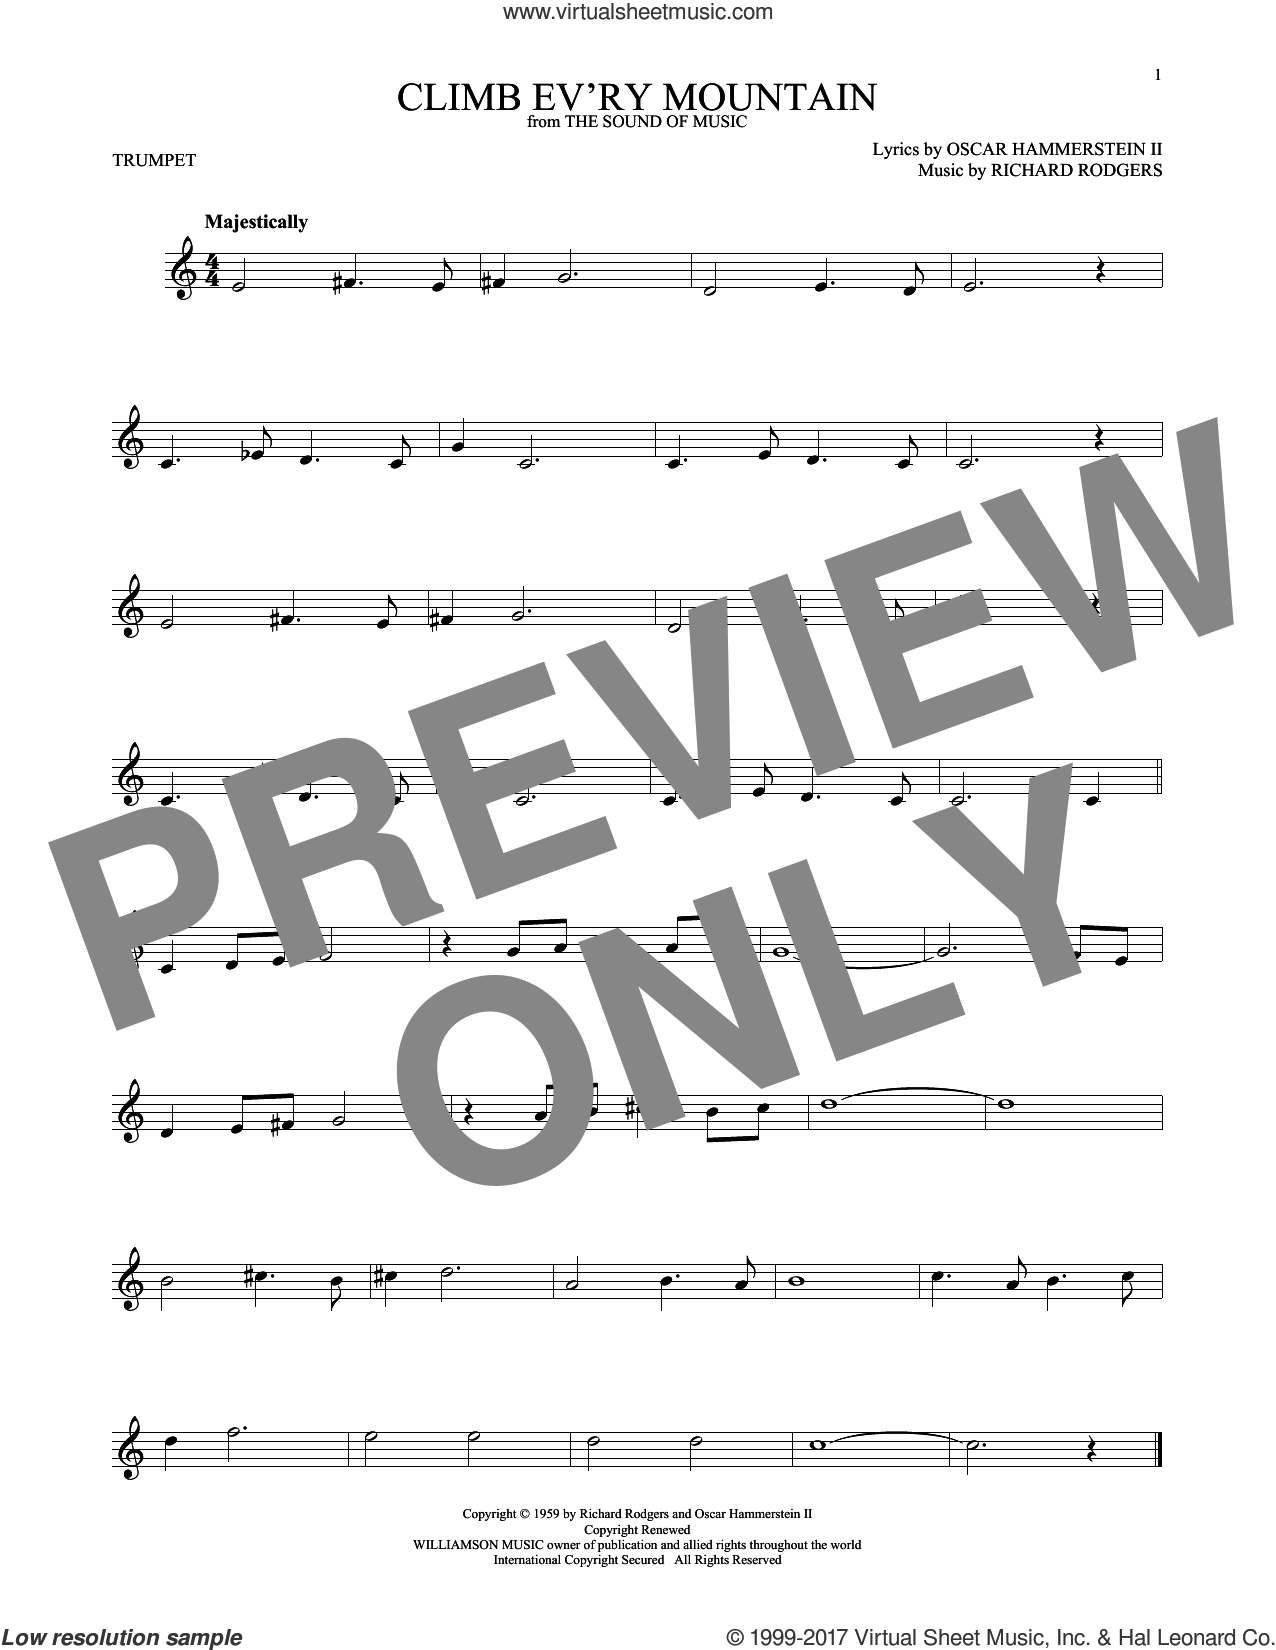 Climb Ev'ry Mountain sheet music for trumpet solo by Rodgers & Hammerstein, Oscar II Hammerstein and Richard Rodgers, intermediate skill level